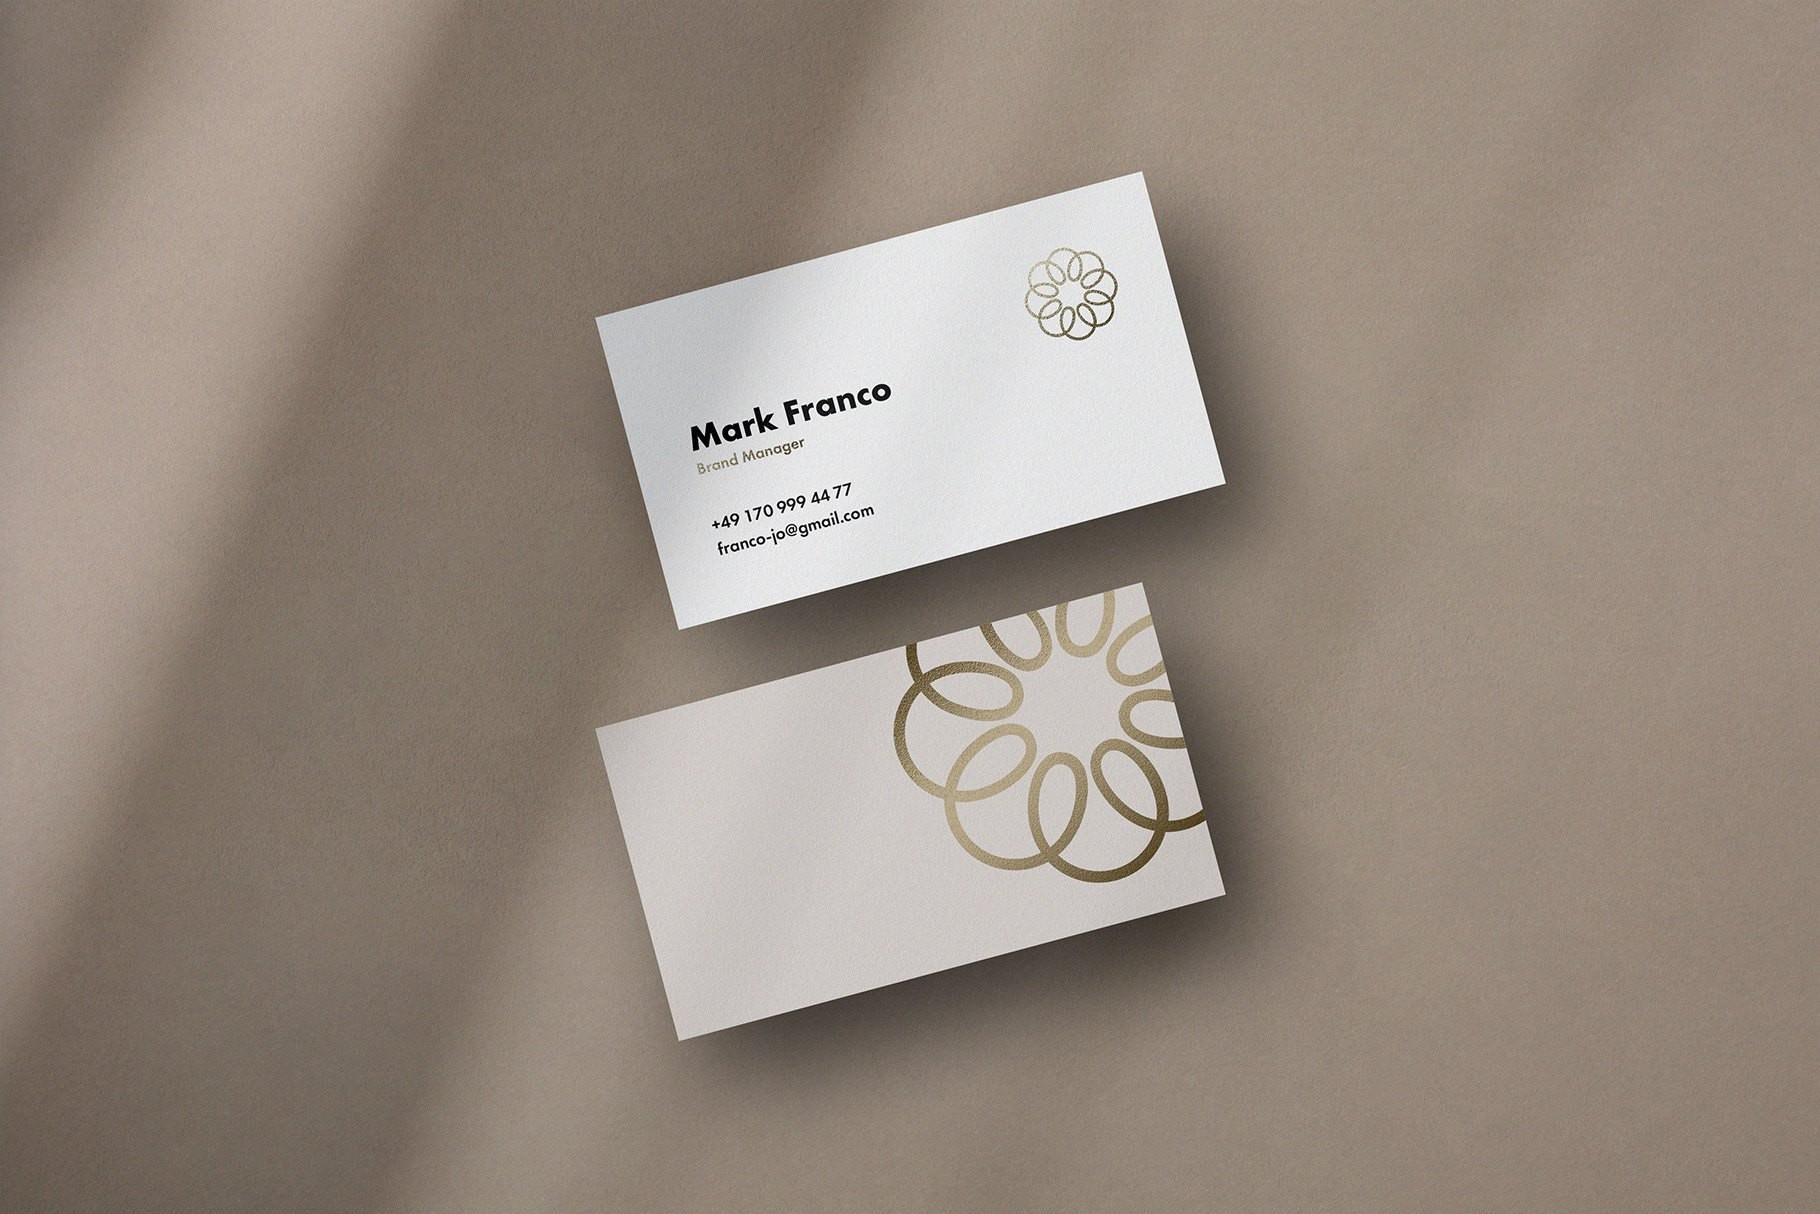 Mote Free Business Card Mockup 5